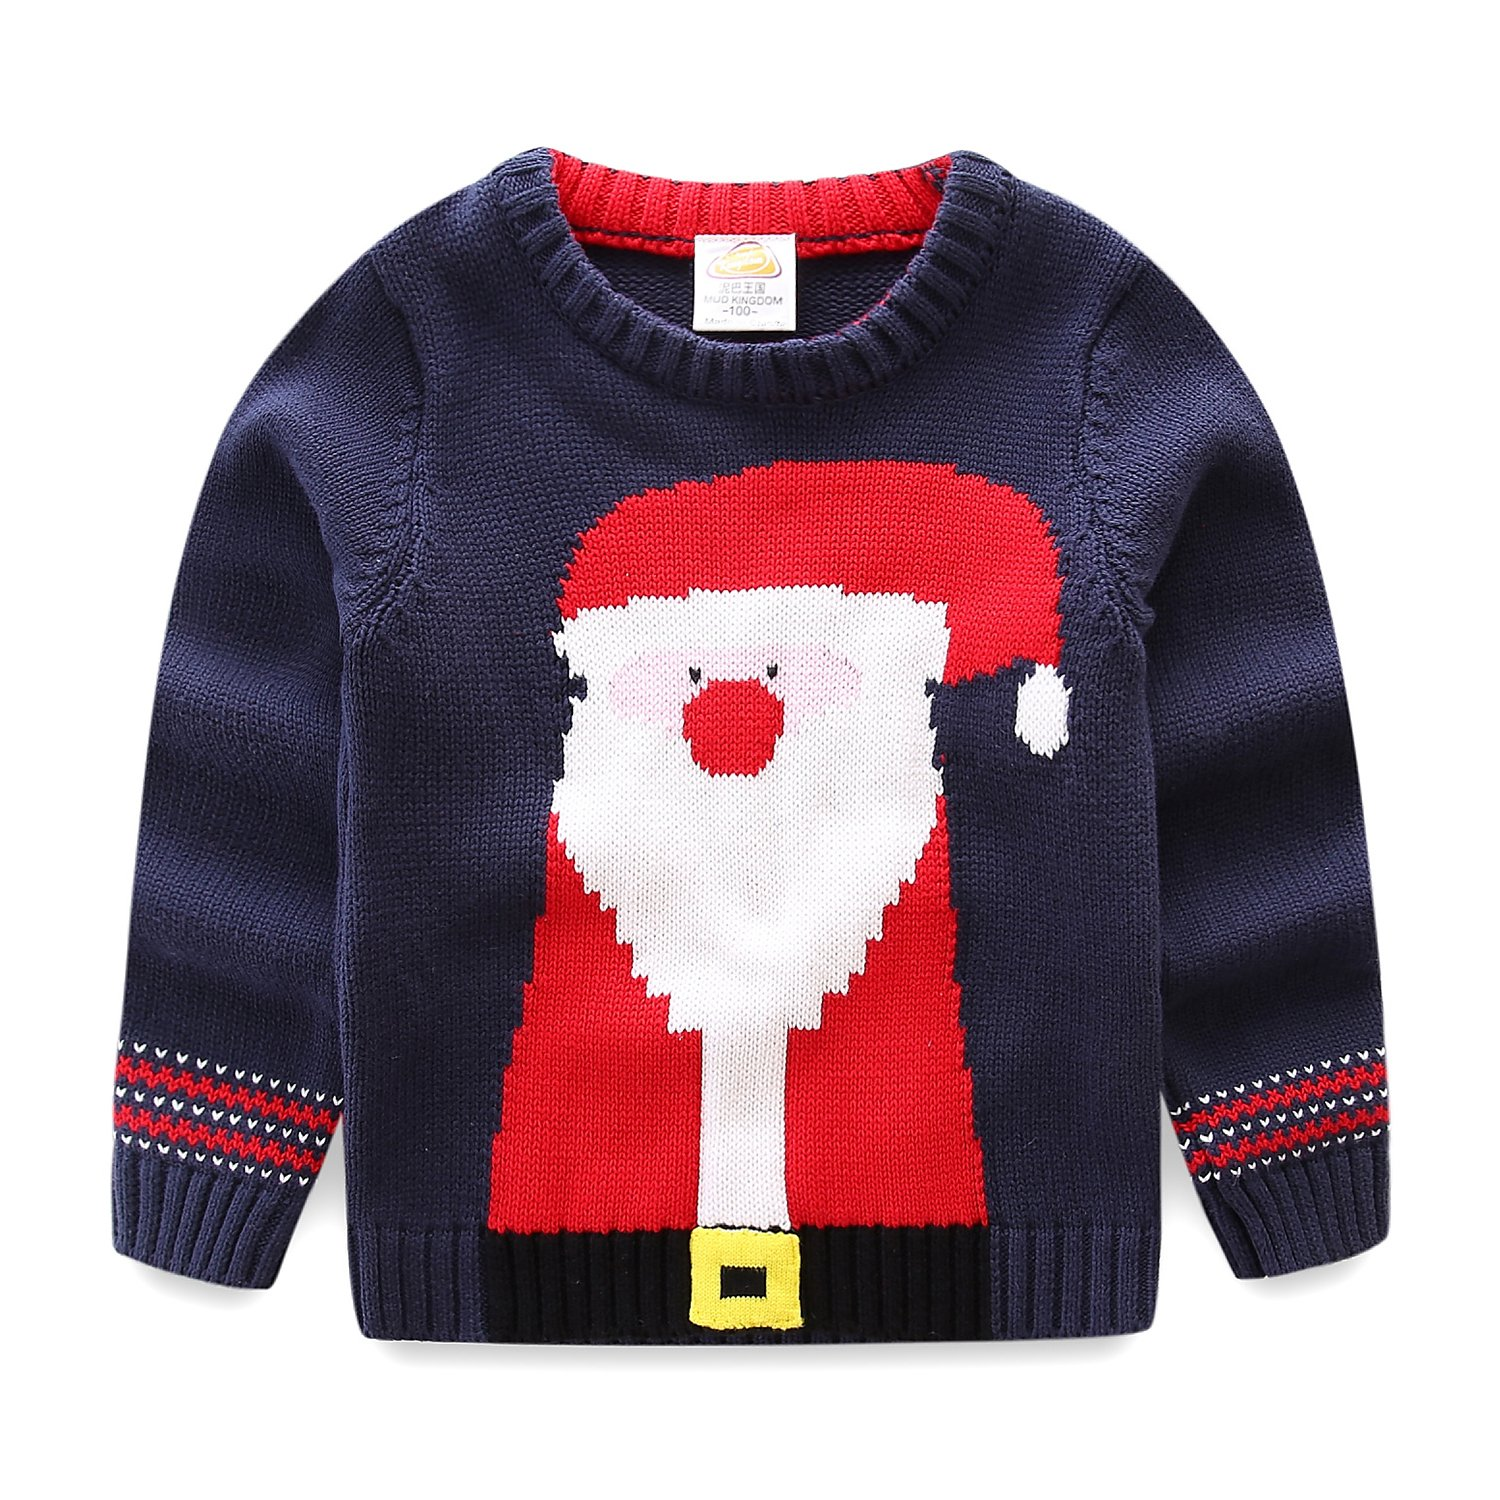 Mud Kingdom Boys Santa Claus Sweater Cotton Pullover S-S0181